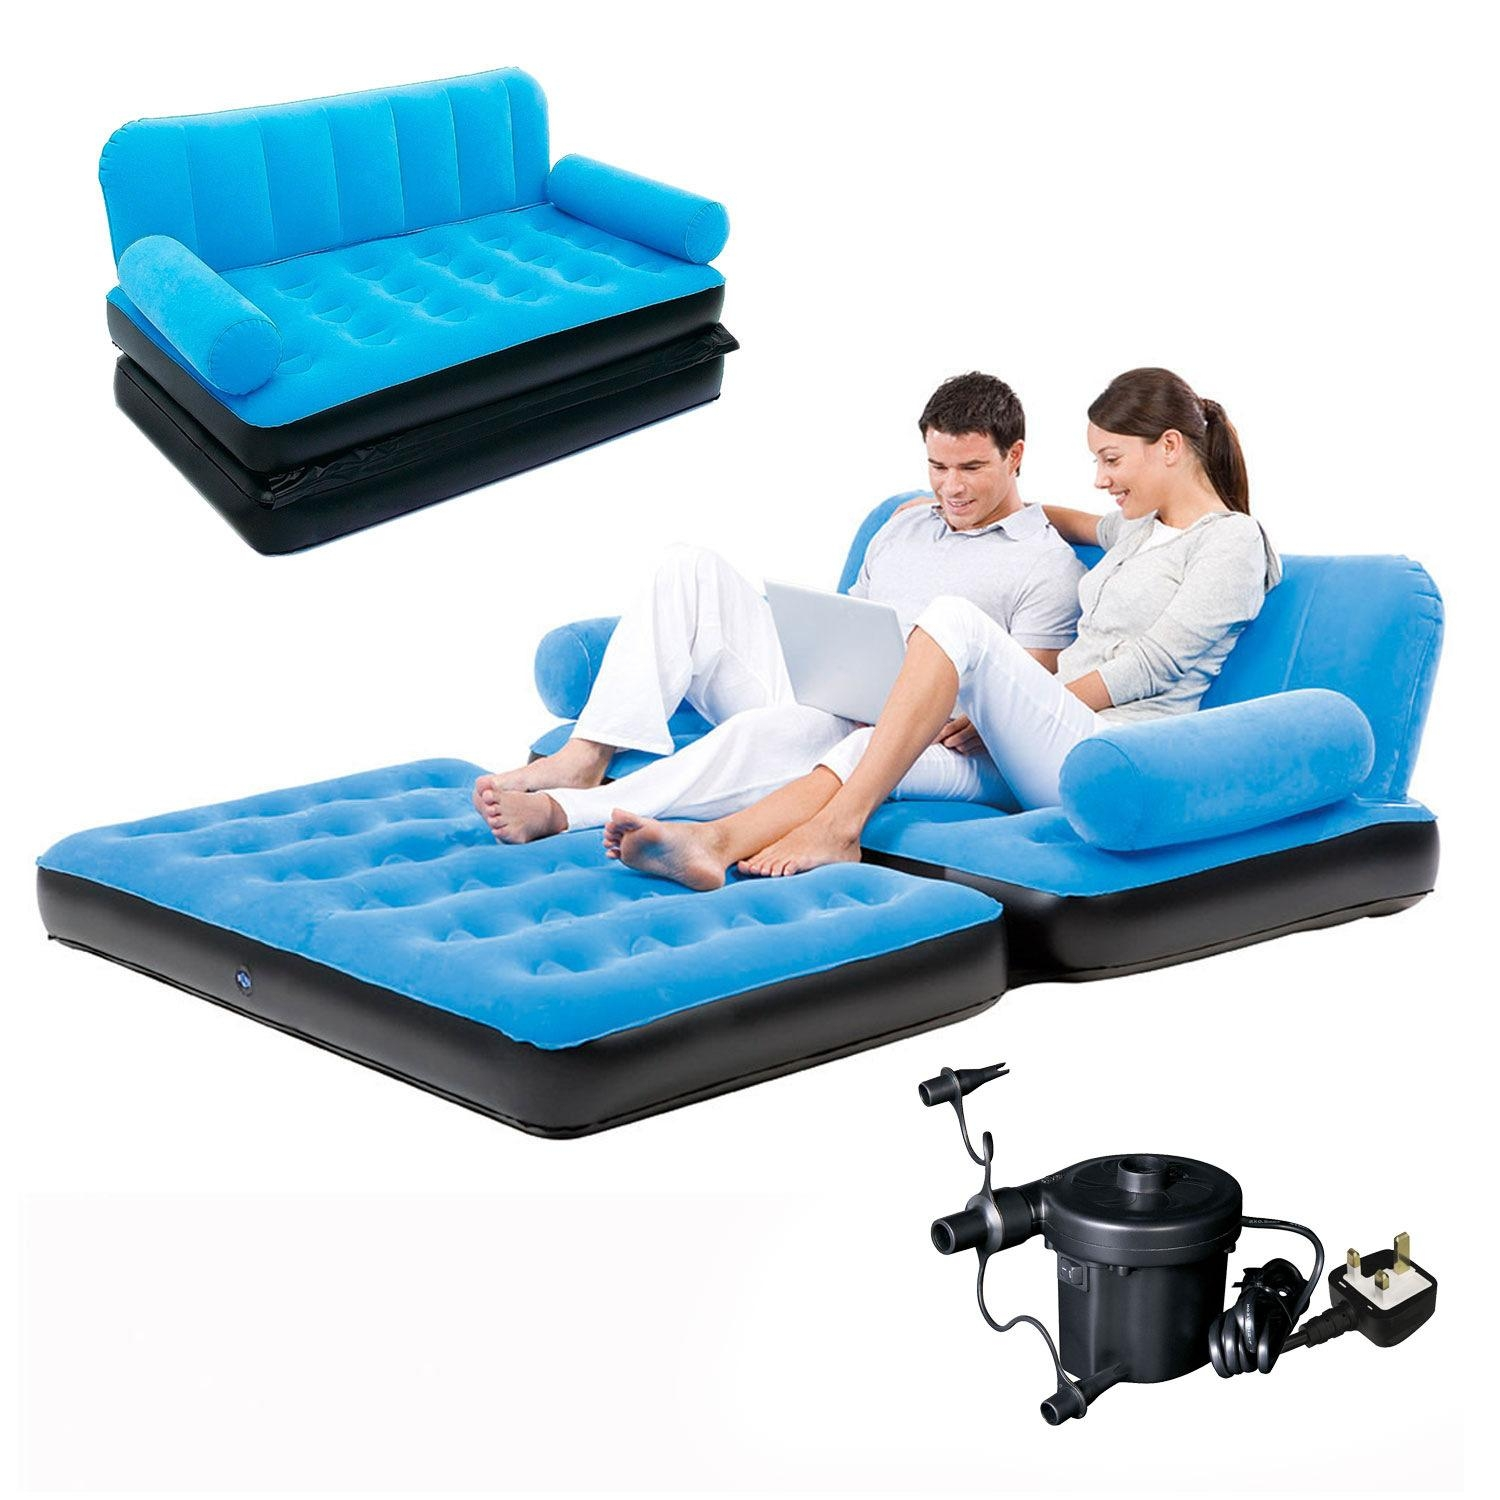 Inflatable Sofa Bed | Roselawnlutheran with regard to Intex Air Couches